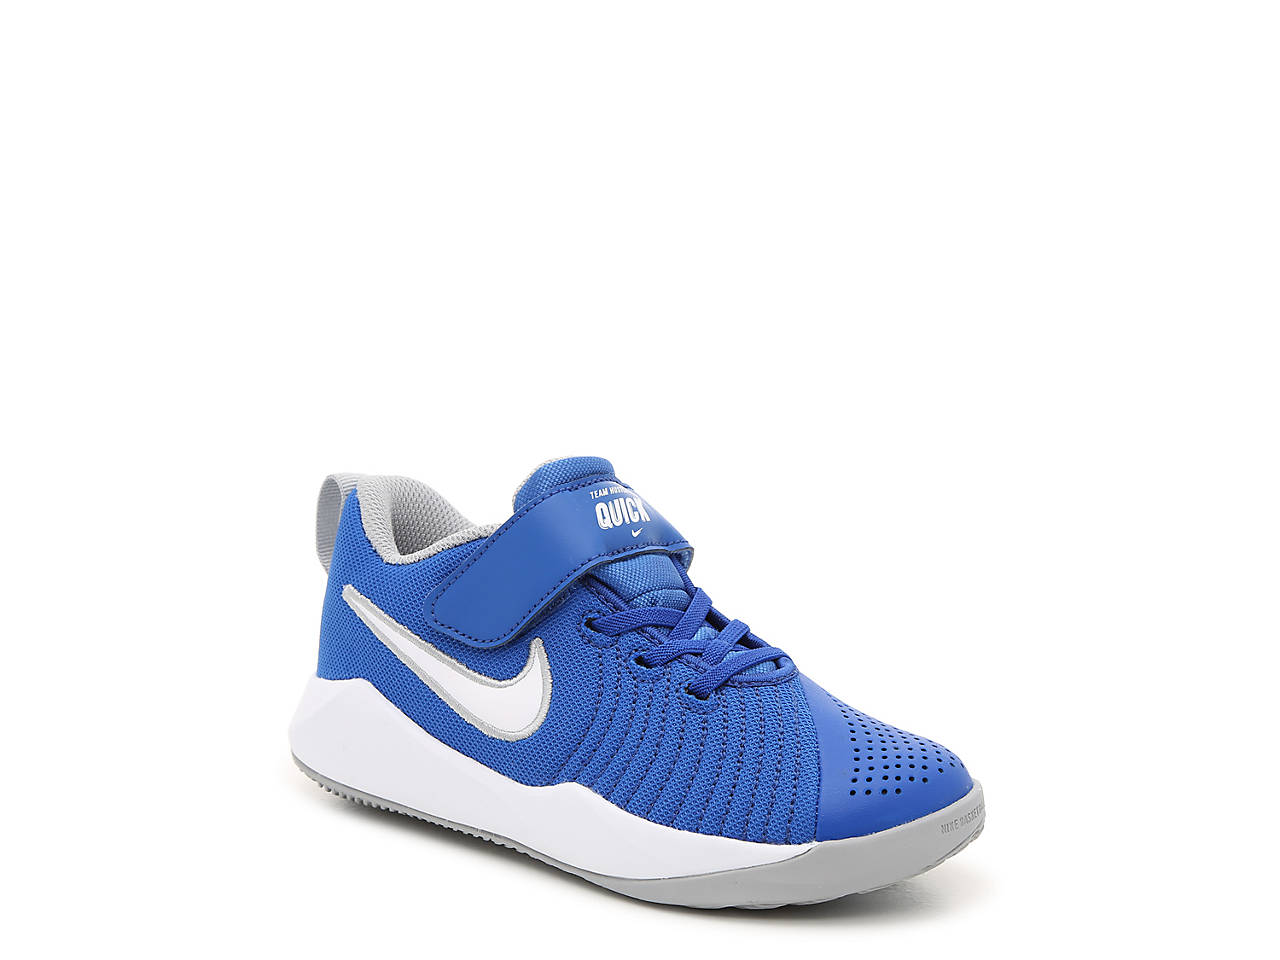 competitive price to buy hot product Nike Team Hustle Quick 2 Basketball Shoe - Kids' Kids Shoes | DSW